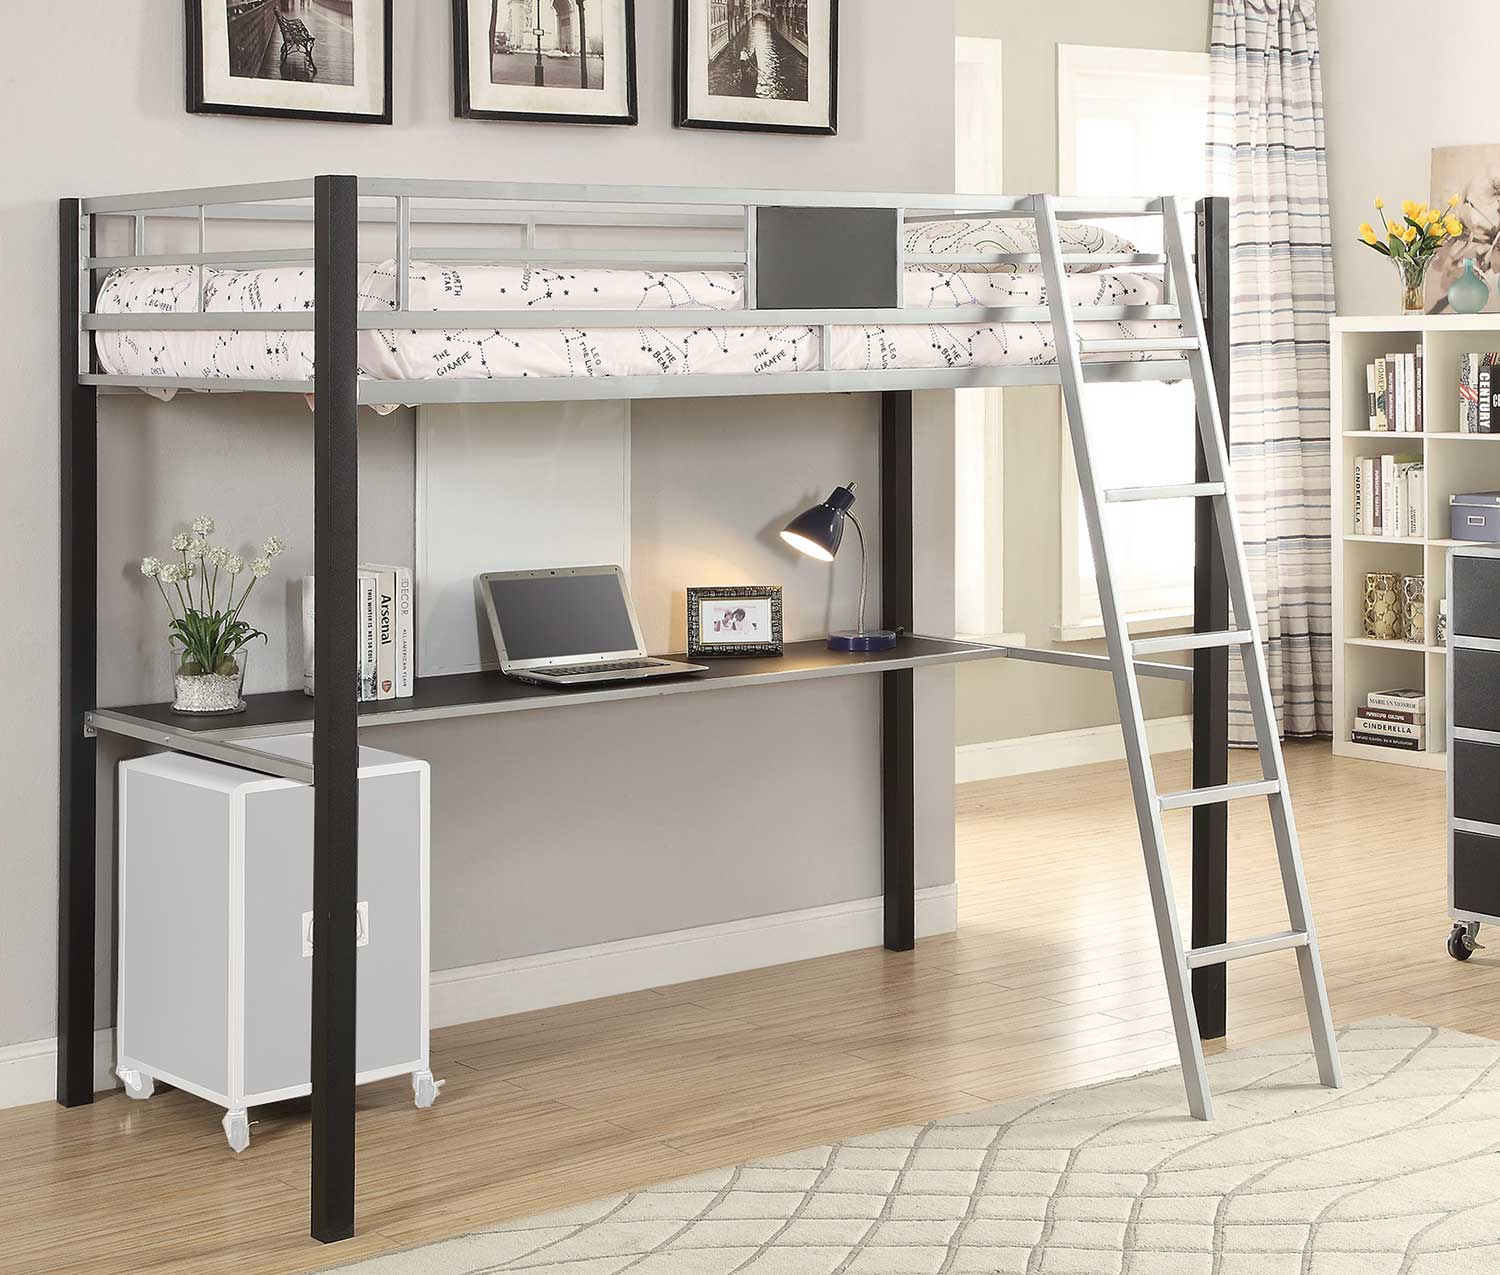 Coaster Leclair Twin Workstation Loft Bed - Silver/Black Leatherette